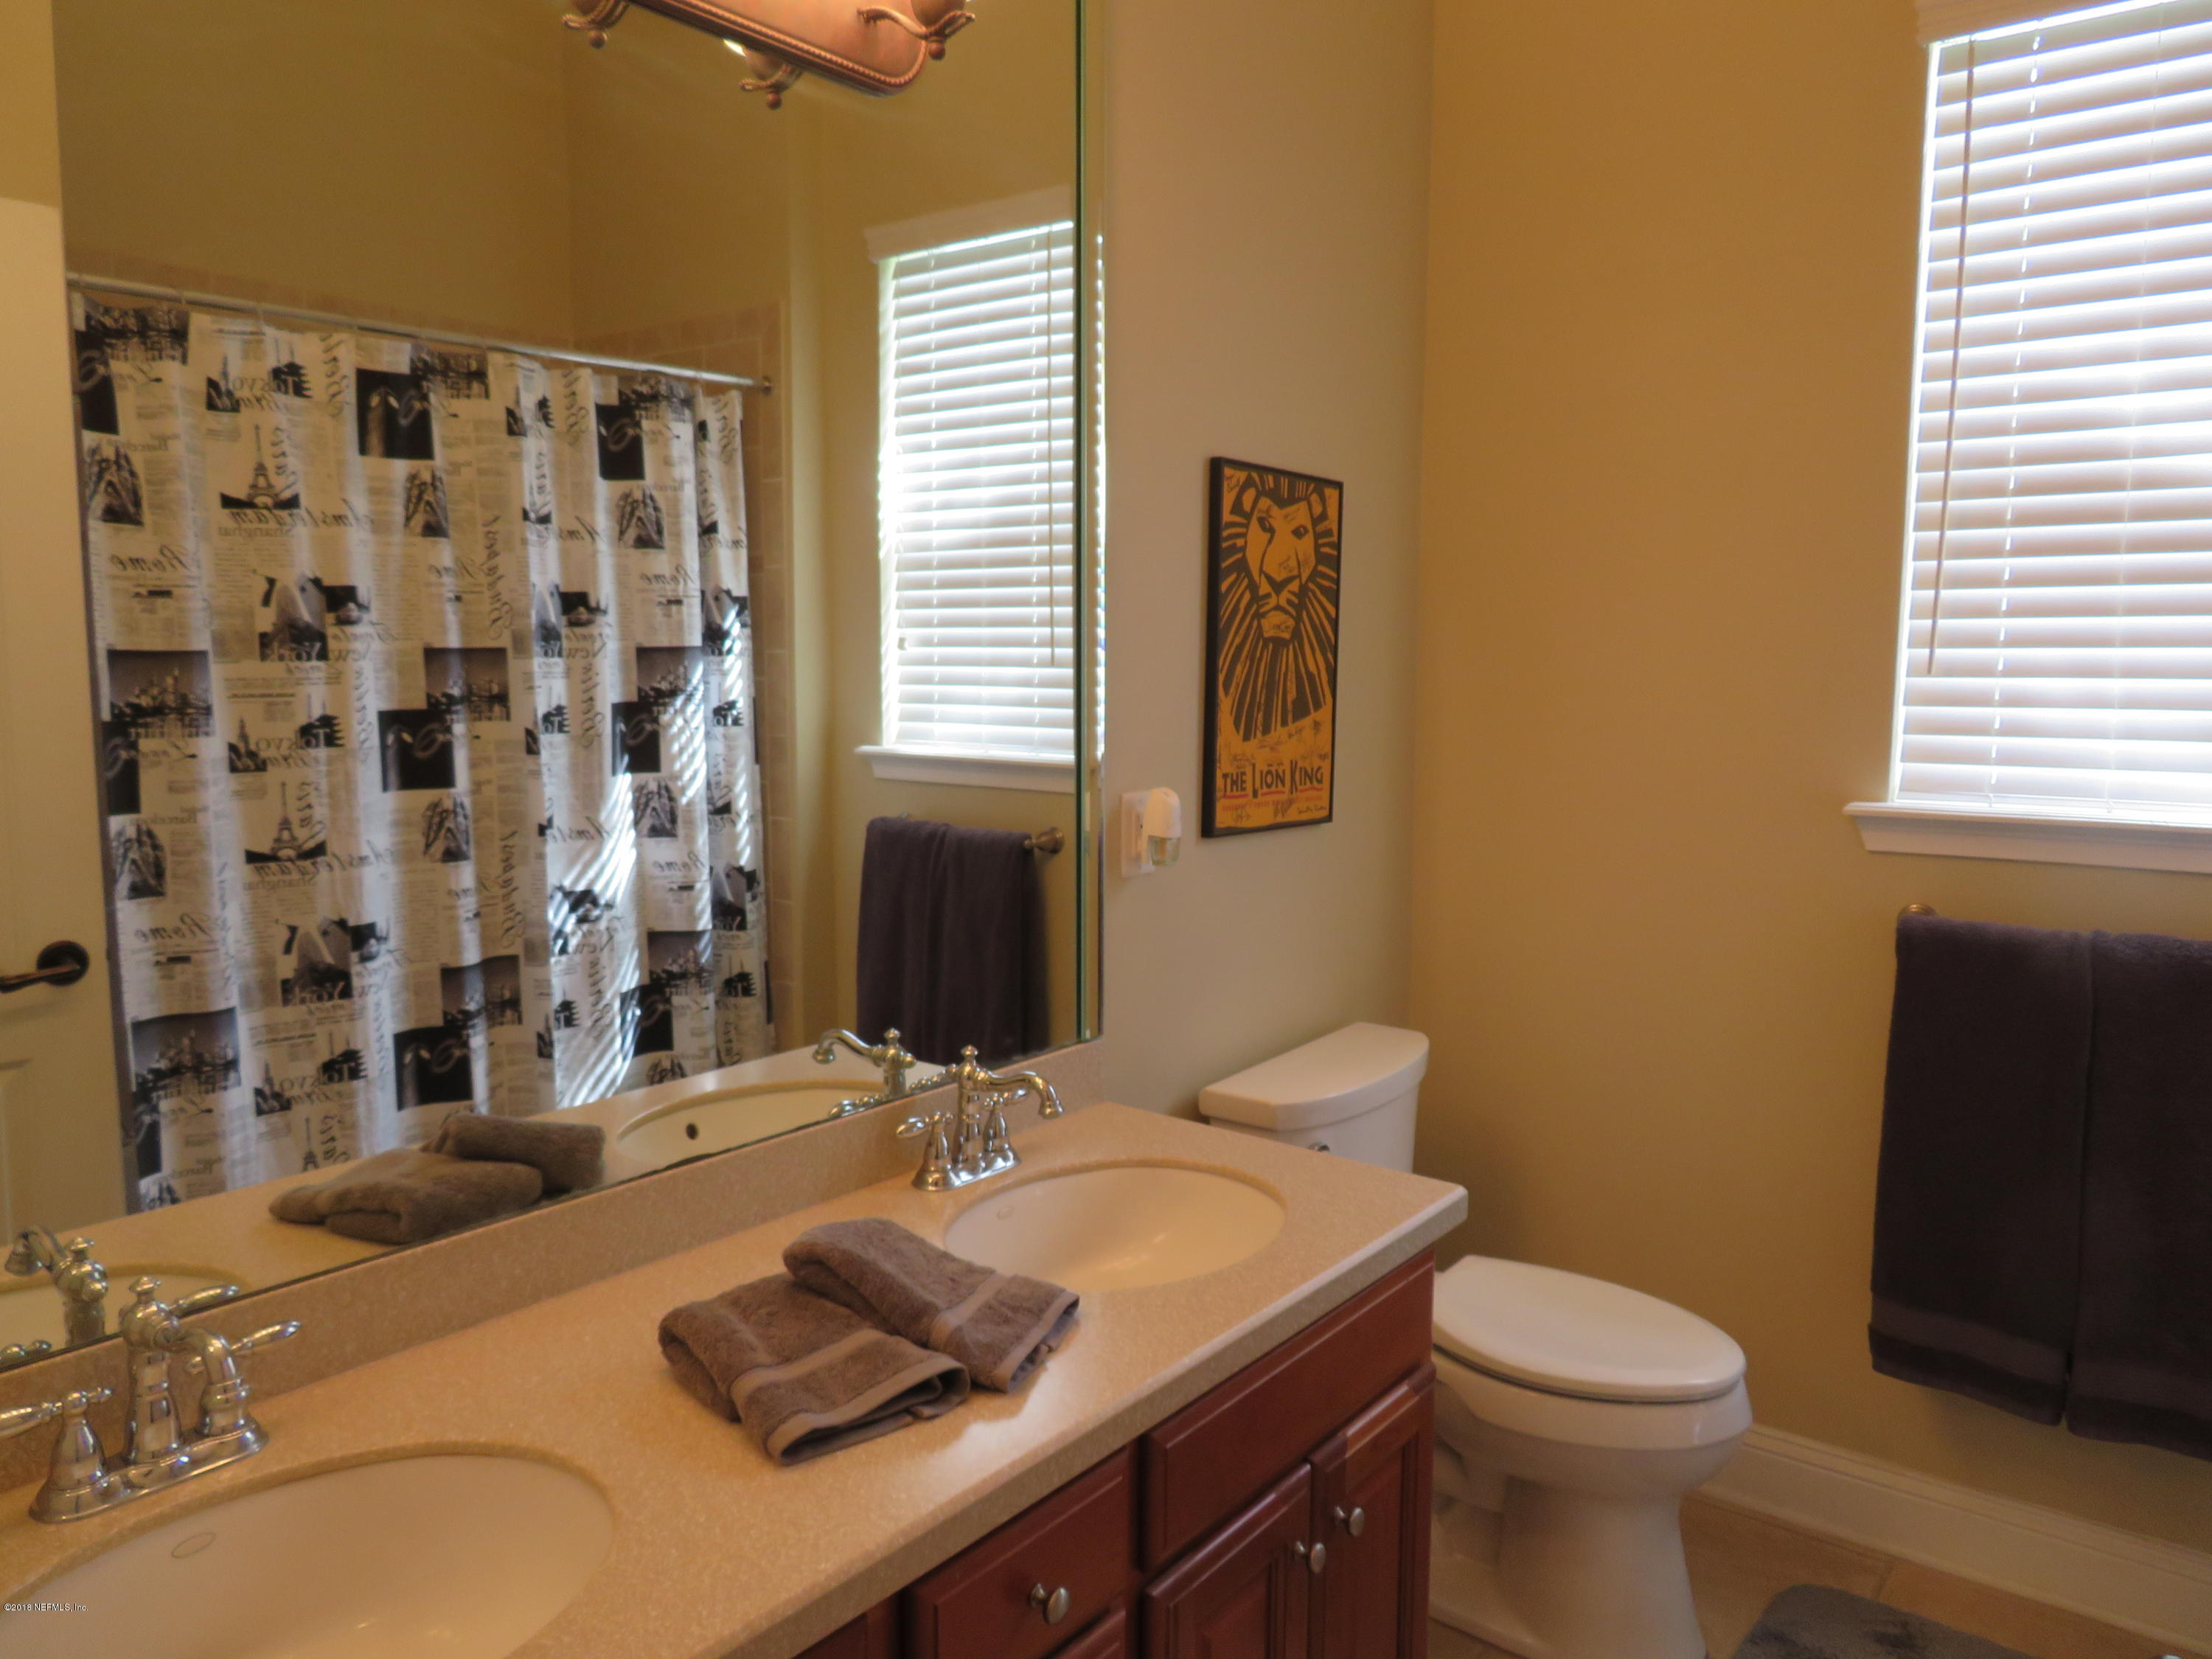 726 ABBY MIST, ST JOHNS, FLORIDA 32259, 4 Bedrooms Bedrooms, ,4 BathroomsBathrooms,Residential - single family,For sale,ABBY MIST,940577